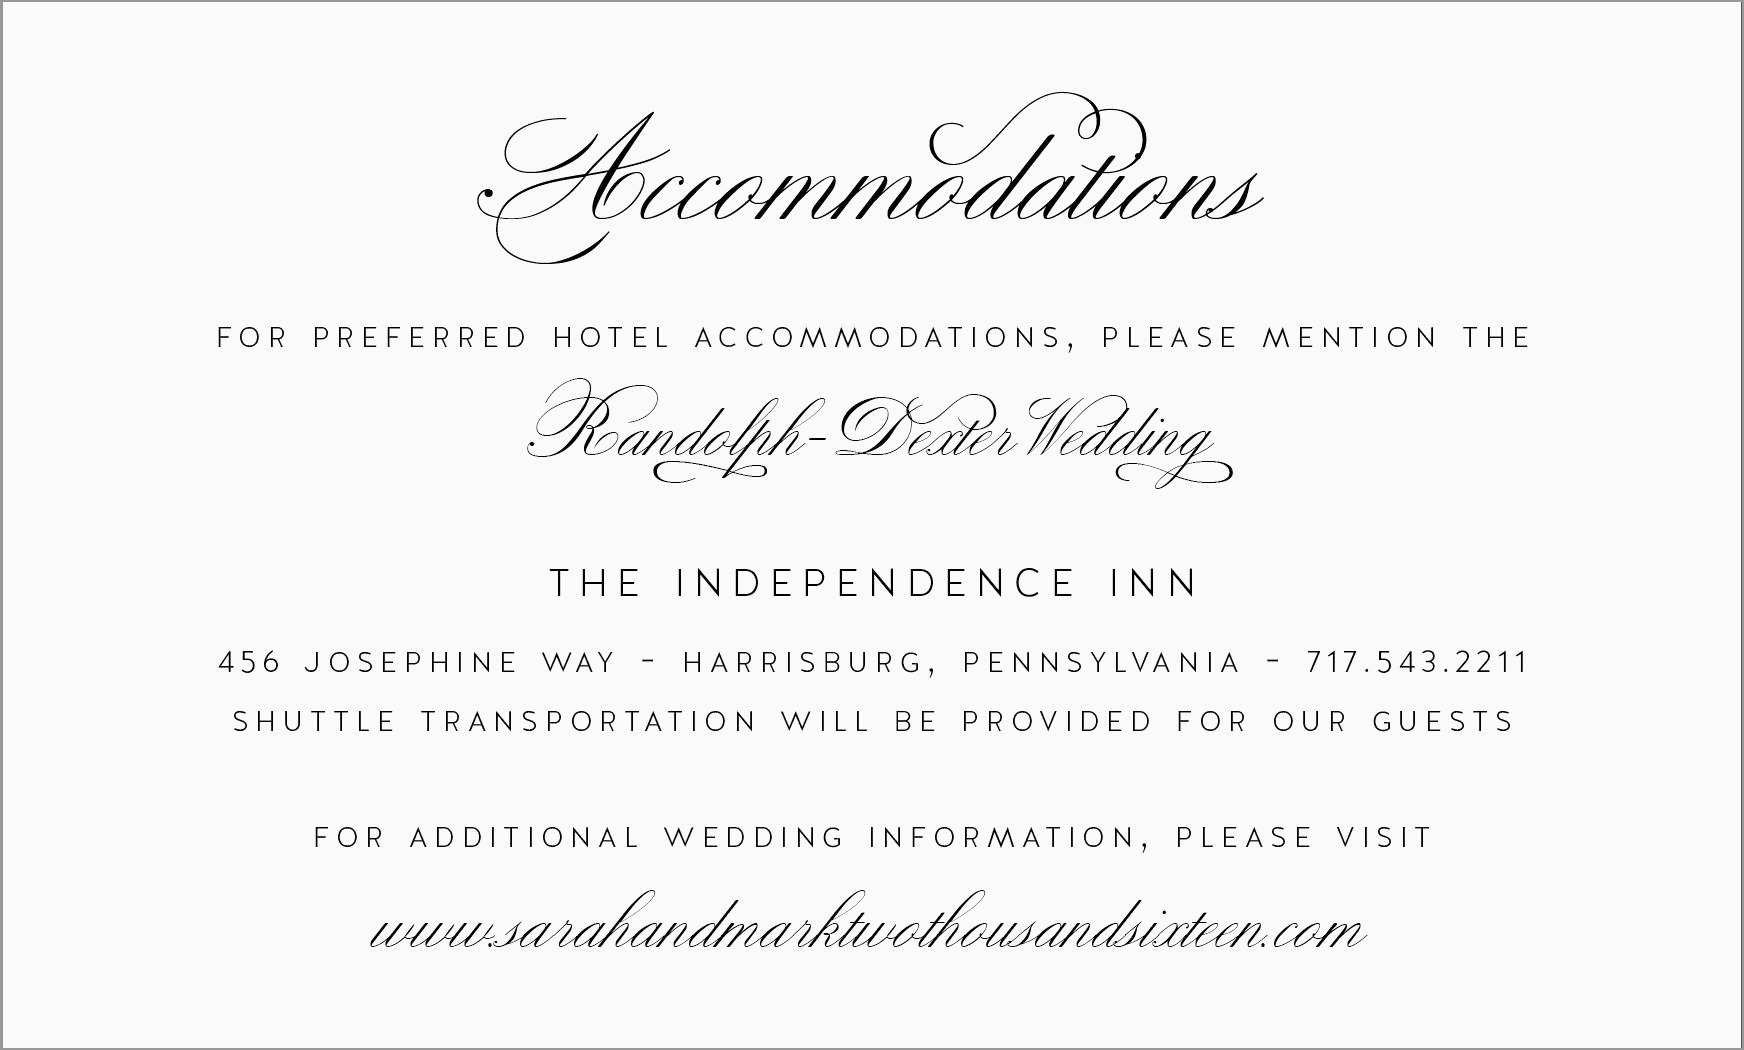 Luxury Free Wedding Accommodation Card Template Best Of Template For Wedding Hotel Informatio Wedding Direction Cards Wedding Directions Wedding Accommodations